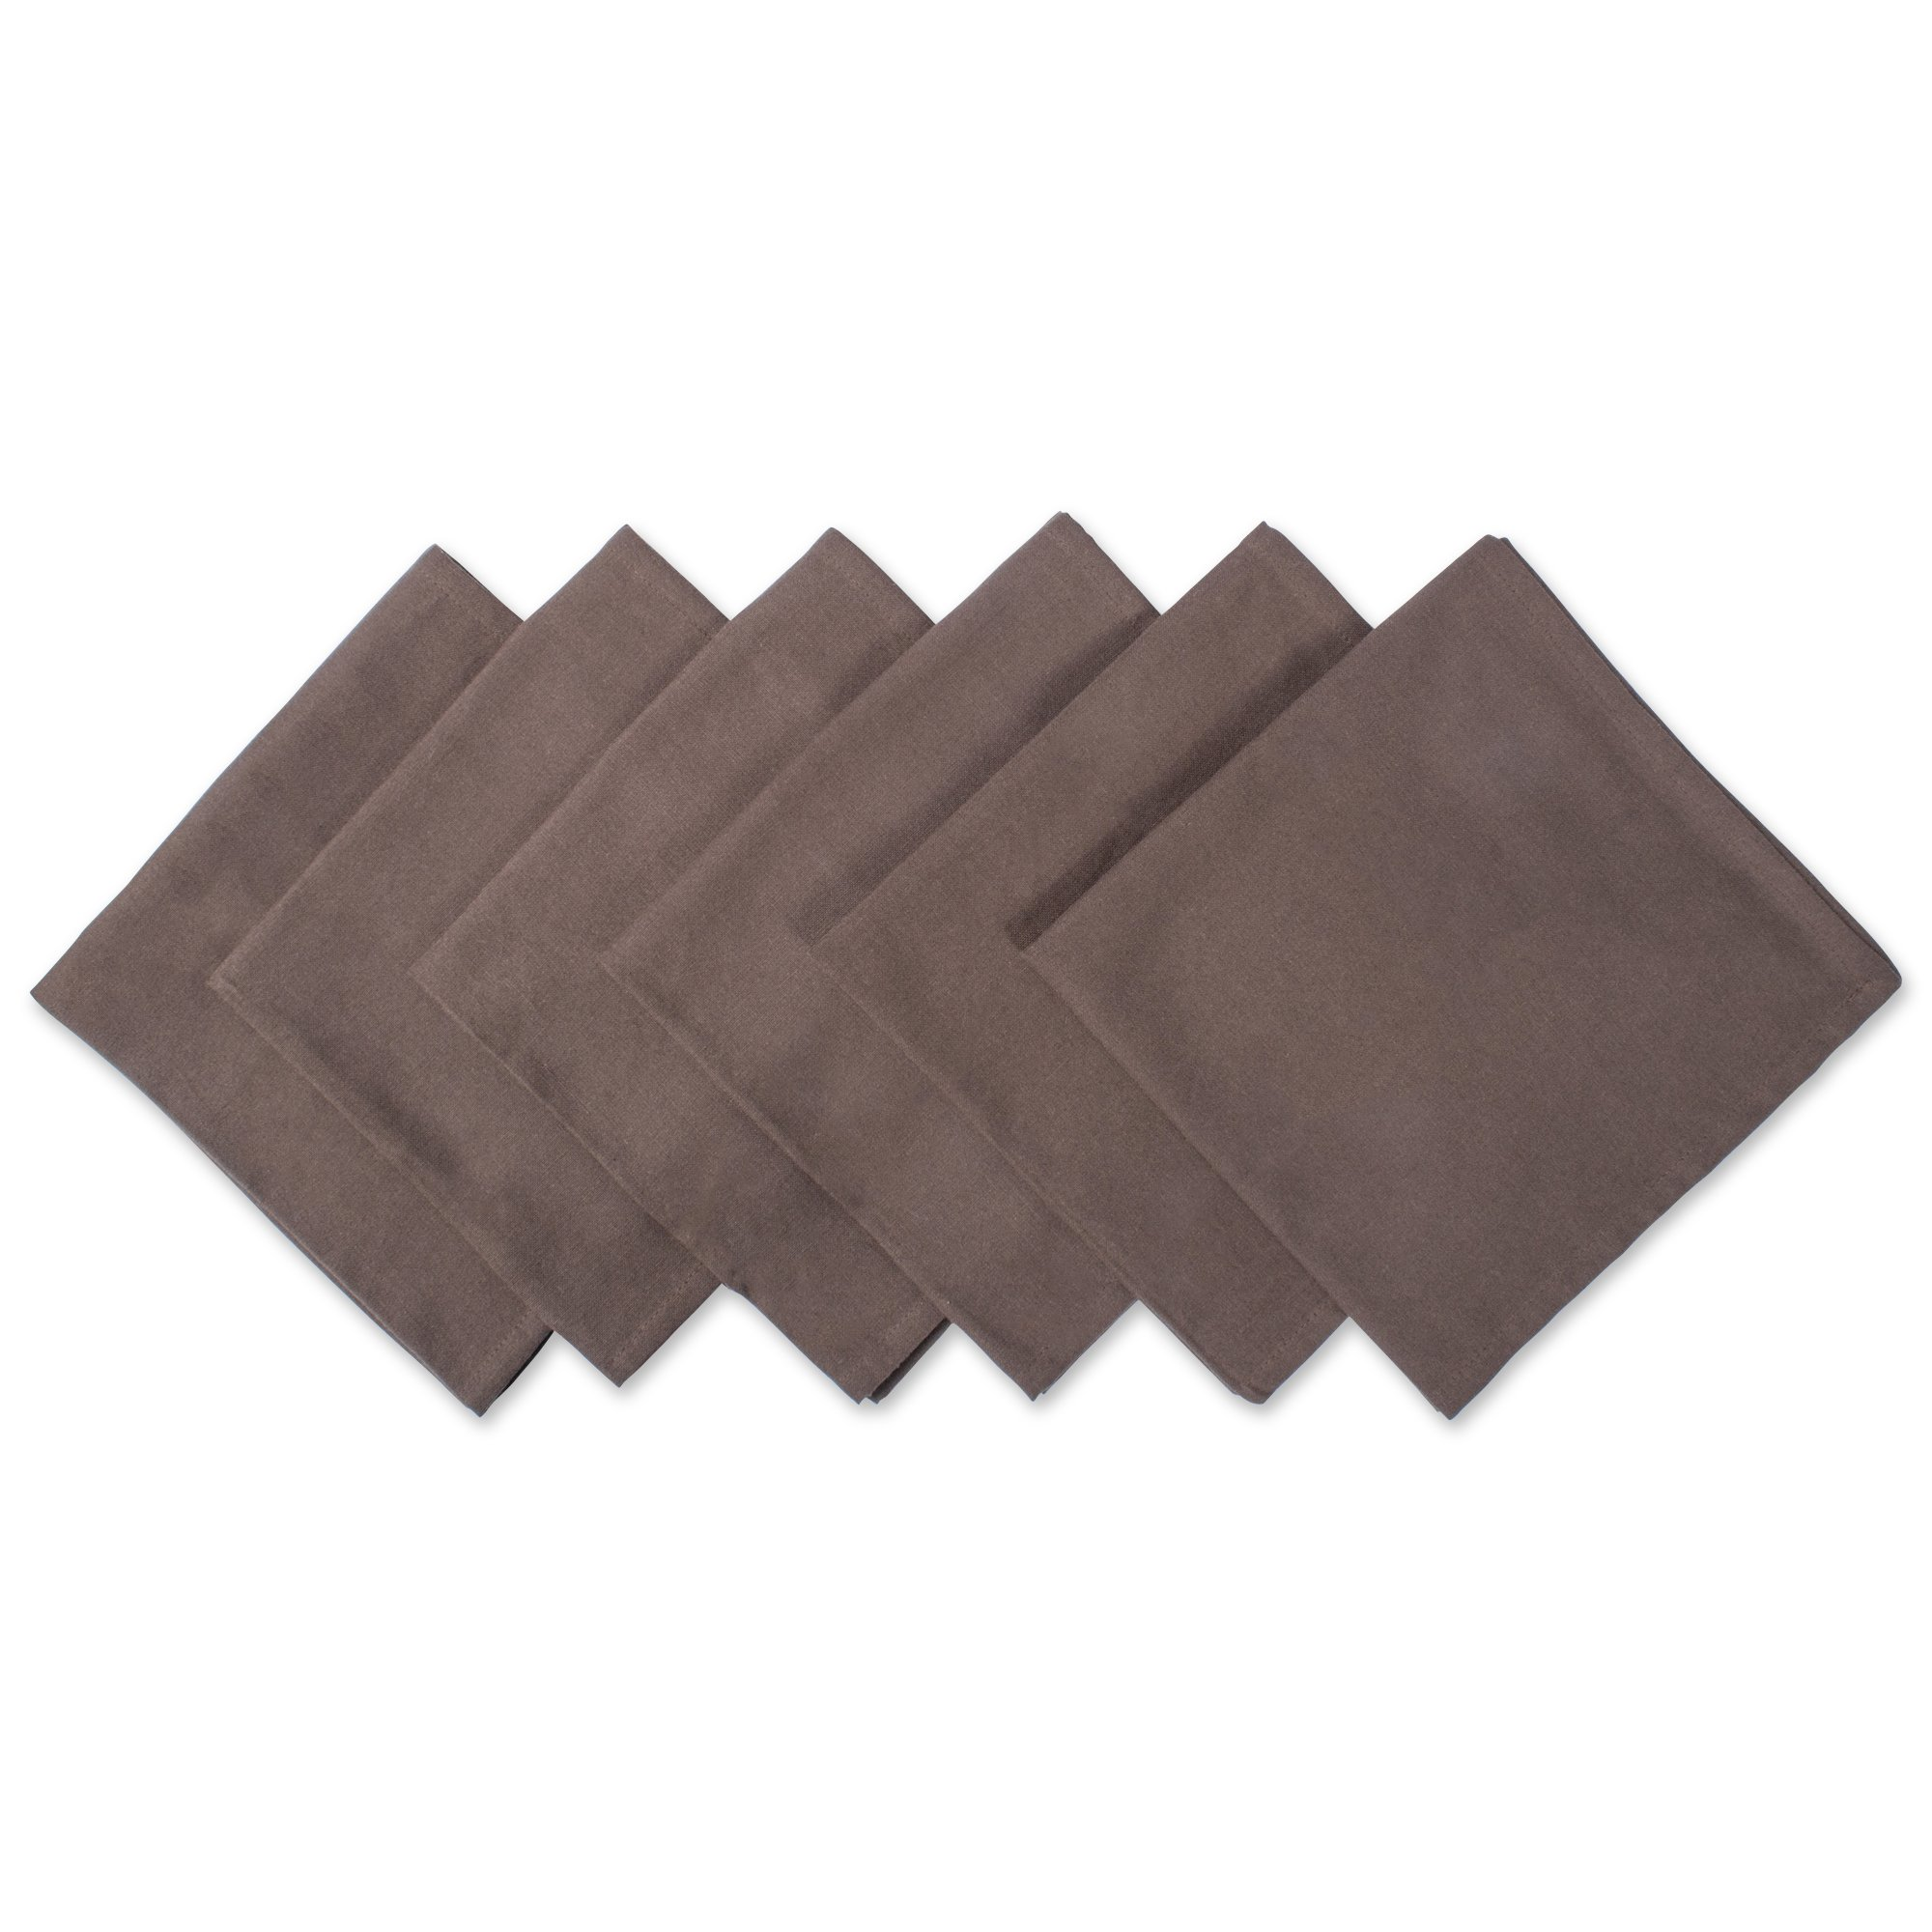 DII 100% Cotton Cloth Napkins, Oversized 20x20'' Dinner Napkins, For Basic Everyday Use, Banquets, Weddings, Events, or Family Gatherings - Set of 6, Dark Brown